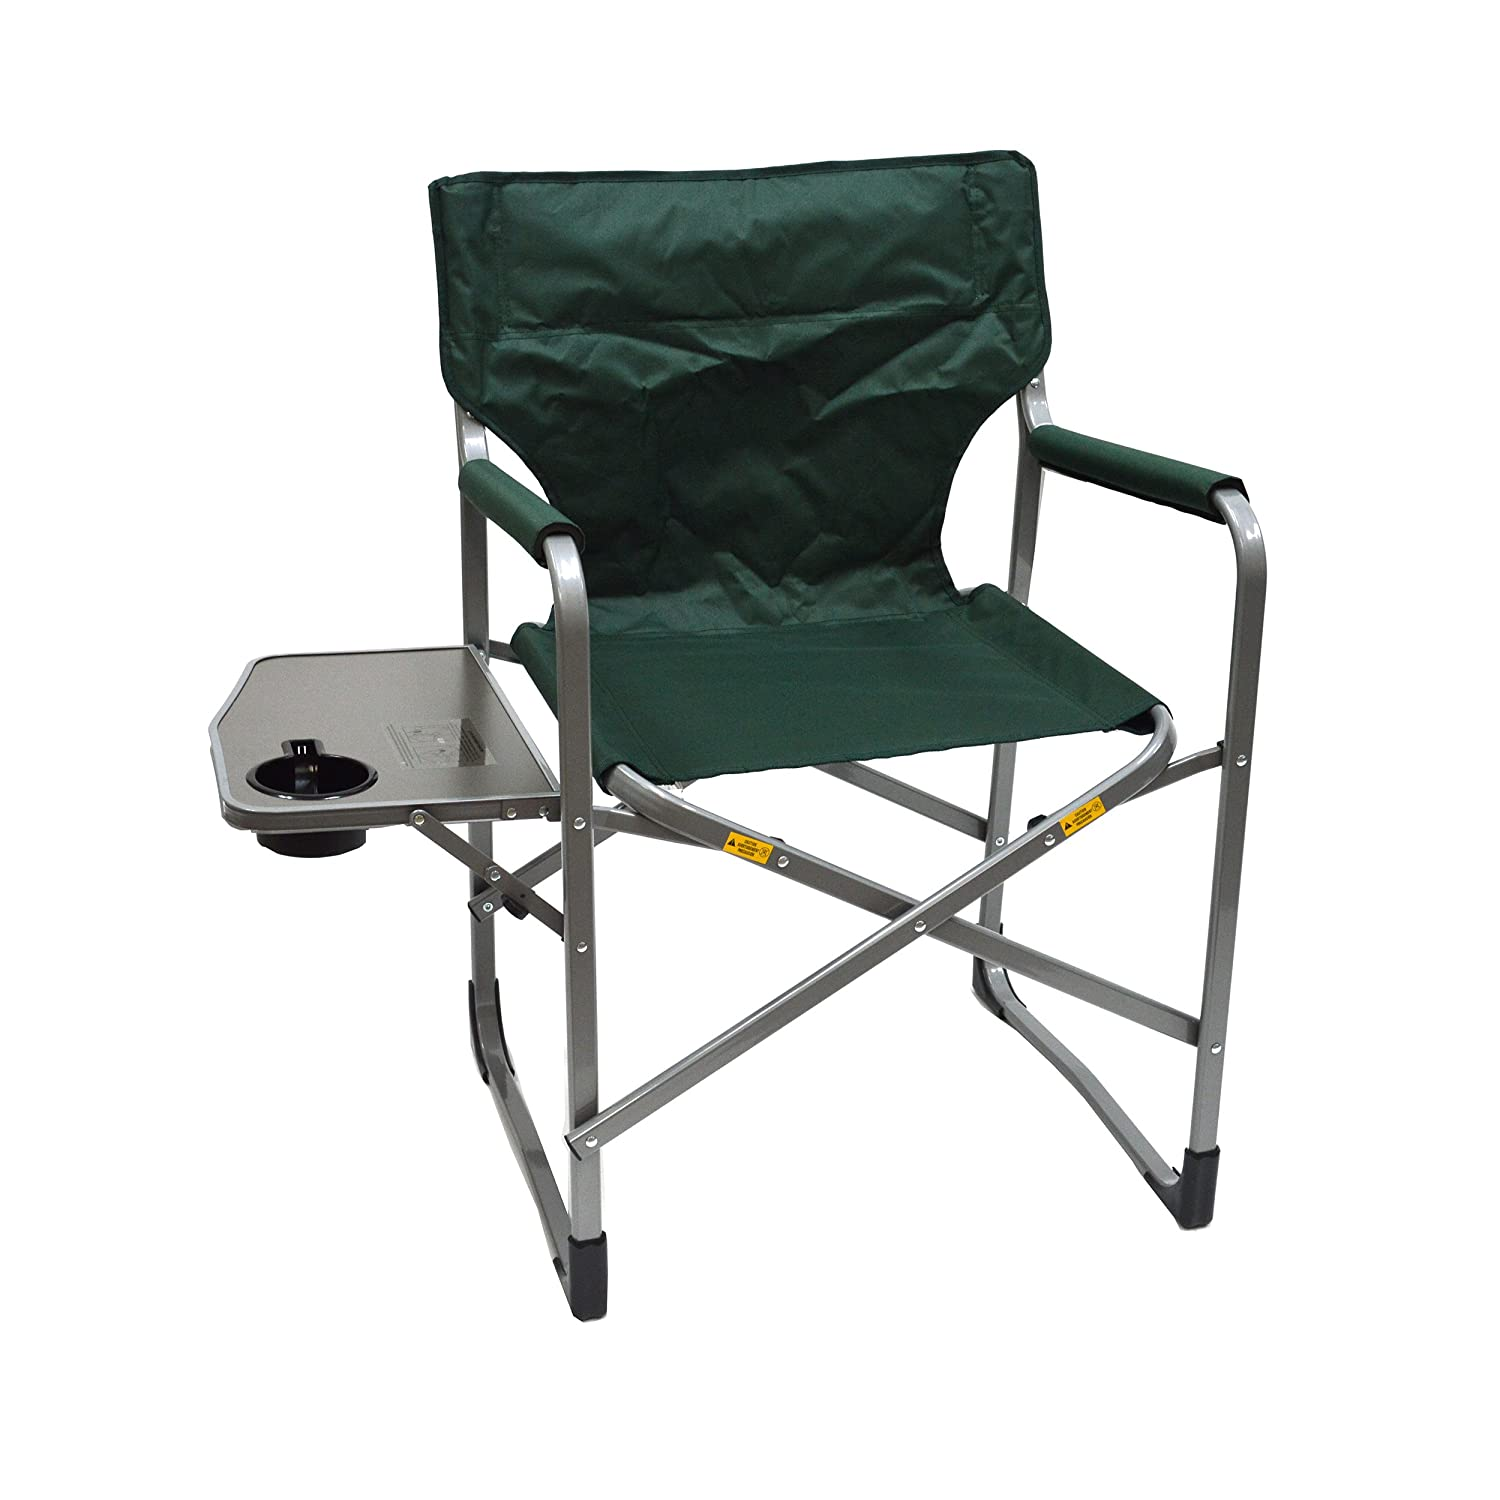 MAC S P O R T S Deluxe Director's Chair with Side Table (Green) Mac Sports C2150ST